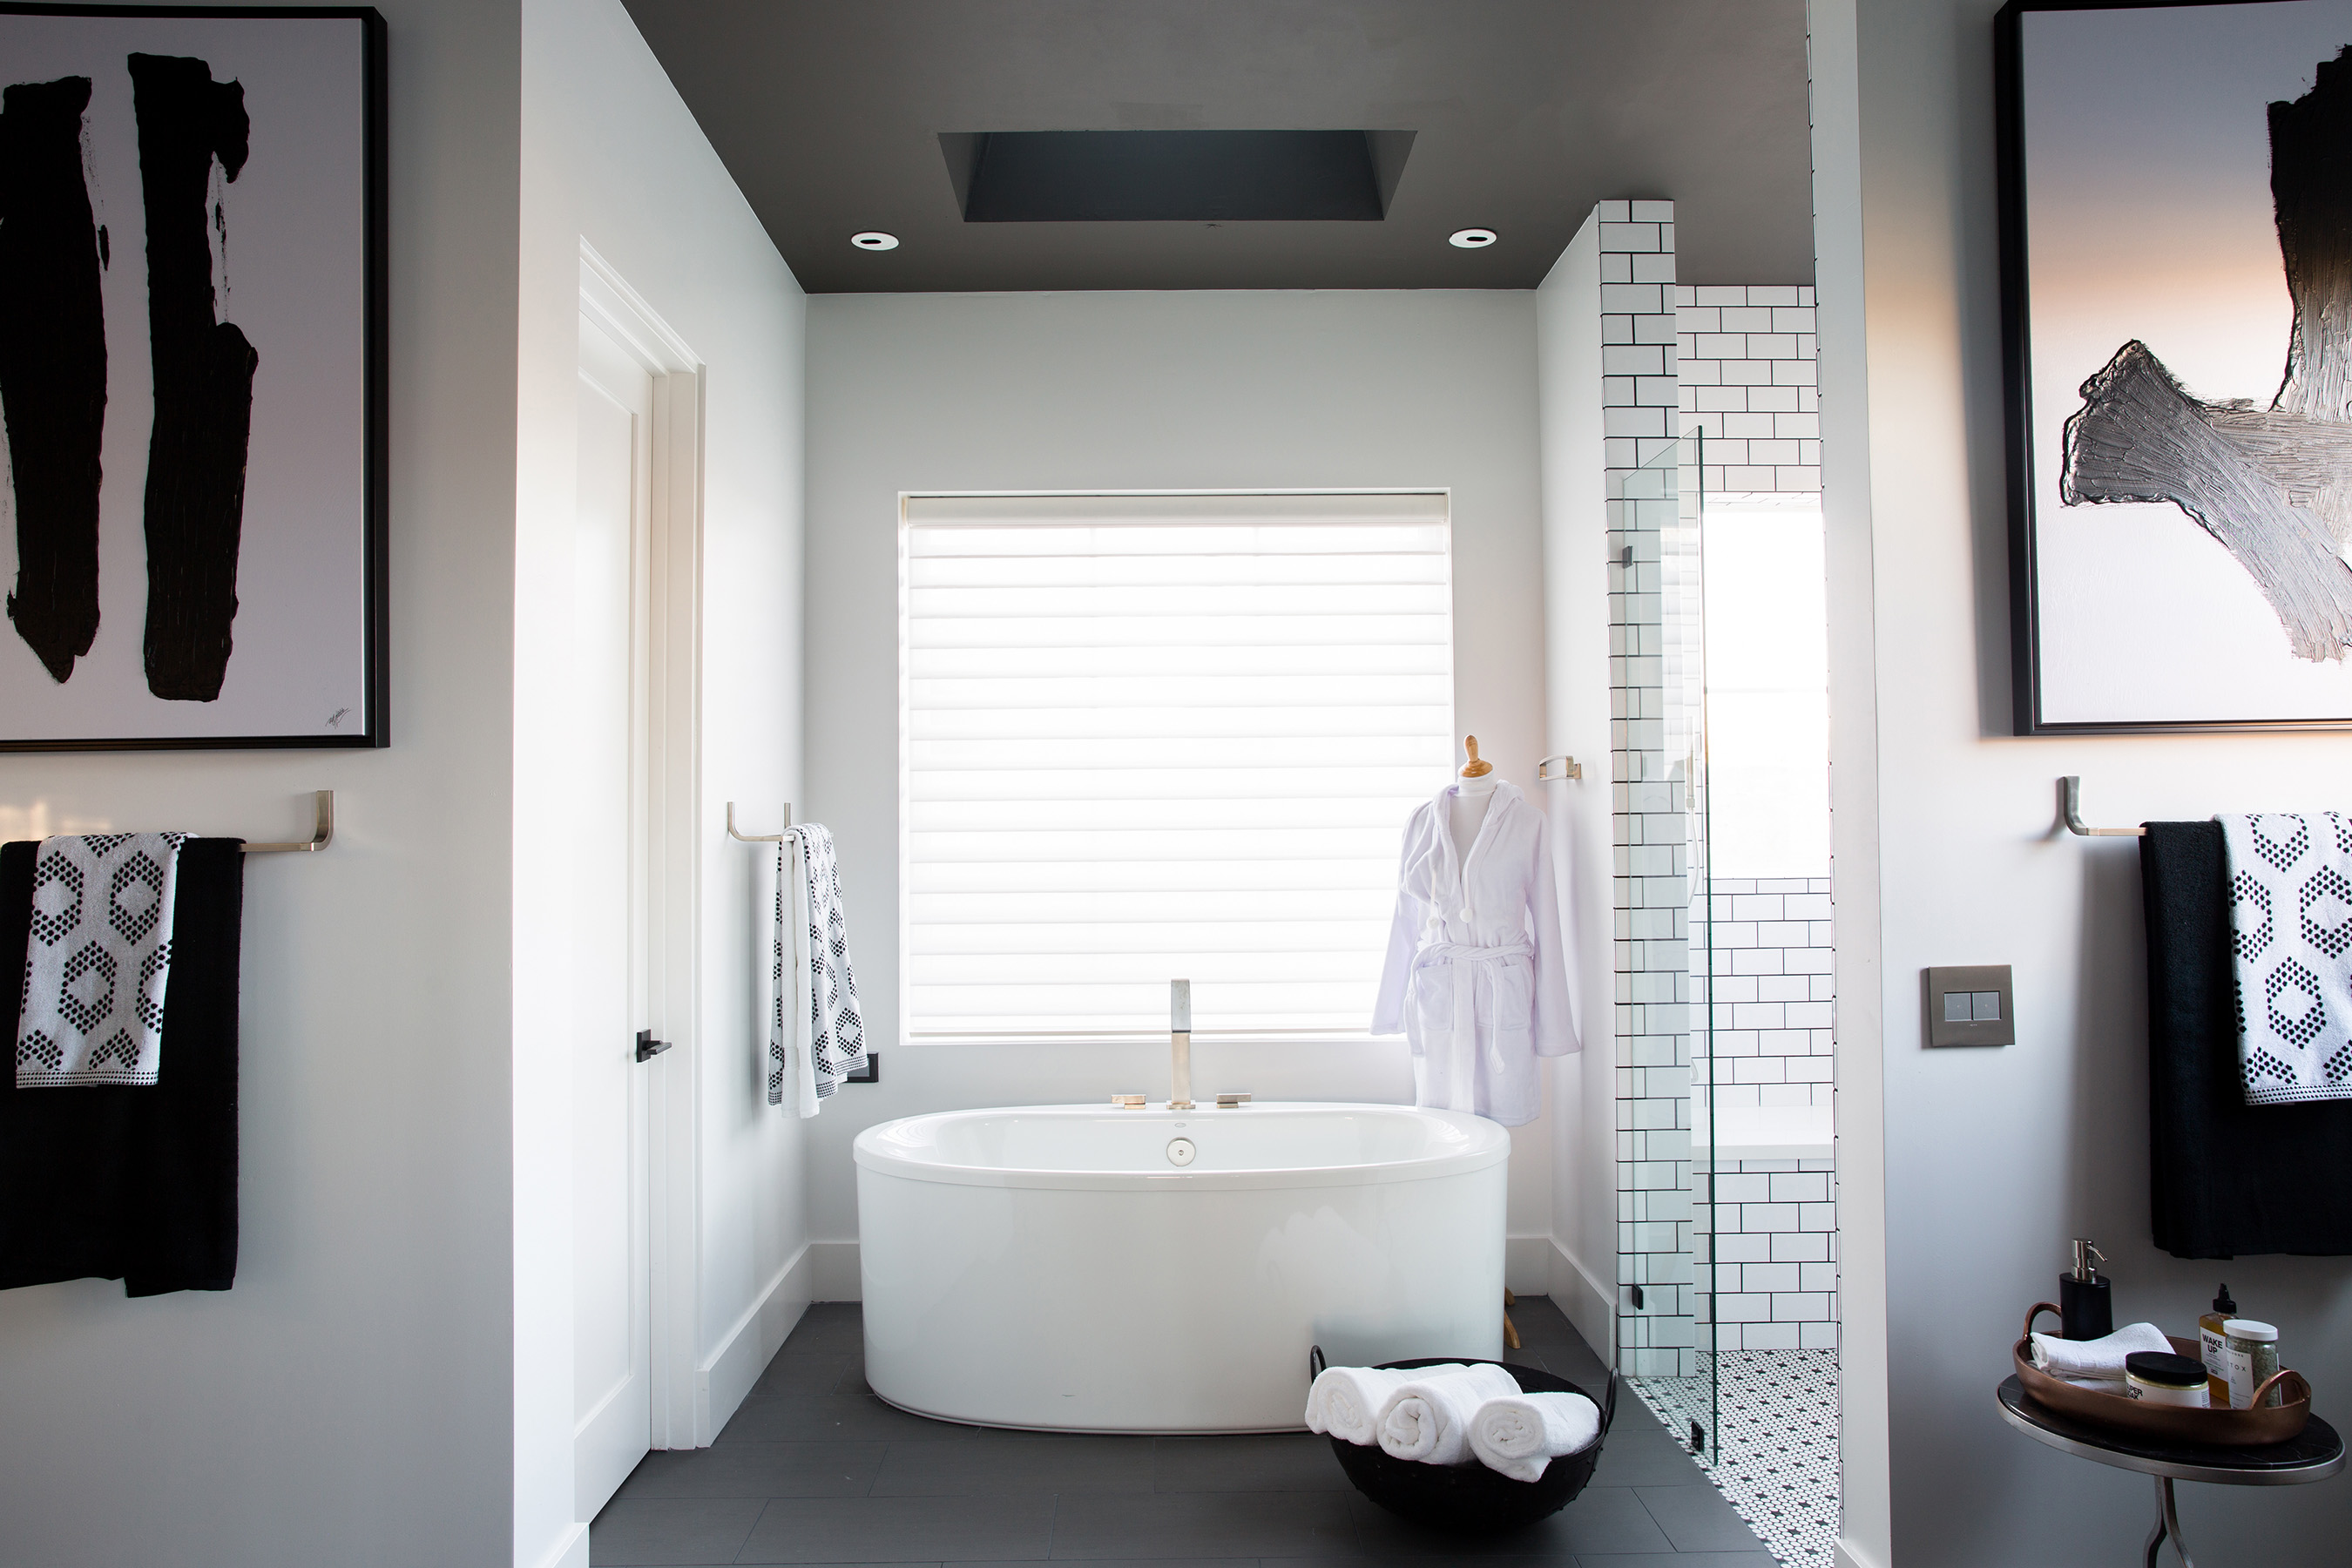 The master bath in the HGTV Smart Home 2017 is a spa-like room tricked out with tons of technology from the tub to the shower to the toilet. The black-and-white color scheme is simple yet stunning. Two sizes of white subway tile contrast with a dark gray grout while floating vanities feature graphic hardware and ultra-modern faucets.